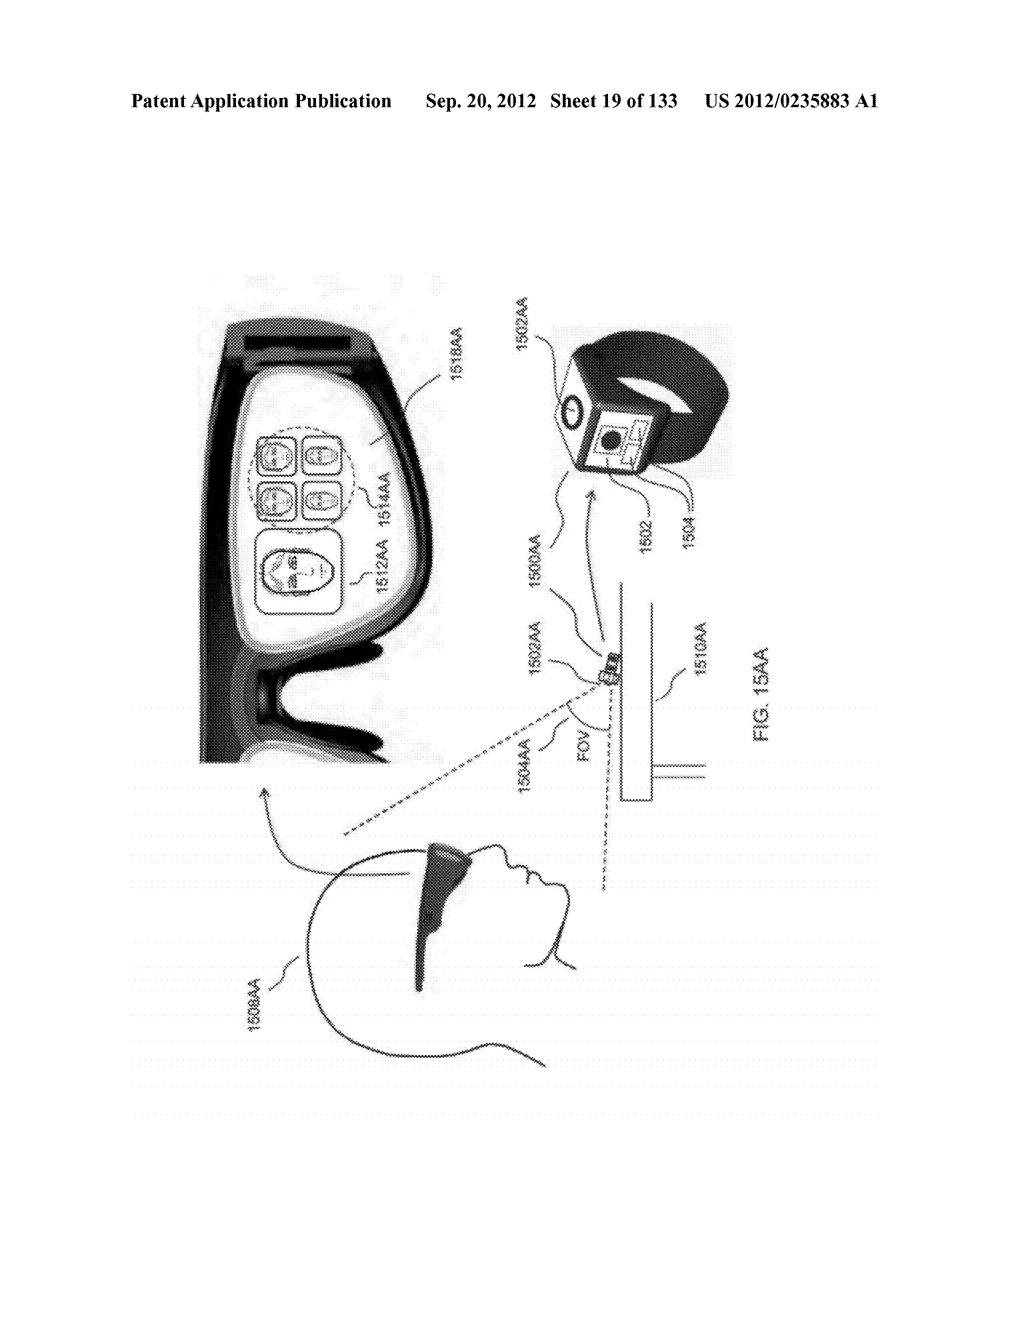 SEE-THROUGH NEAR-EYE DISPLAY GLASSES WITH A LIGHT TRANSMISSIVE WEDGE     SHAPED ILLUMINATION SYSTEM - diagram, schematic, and image 20